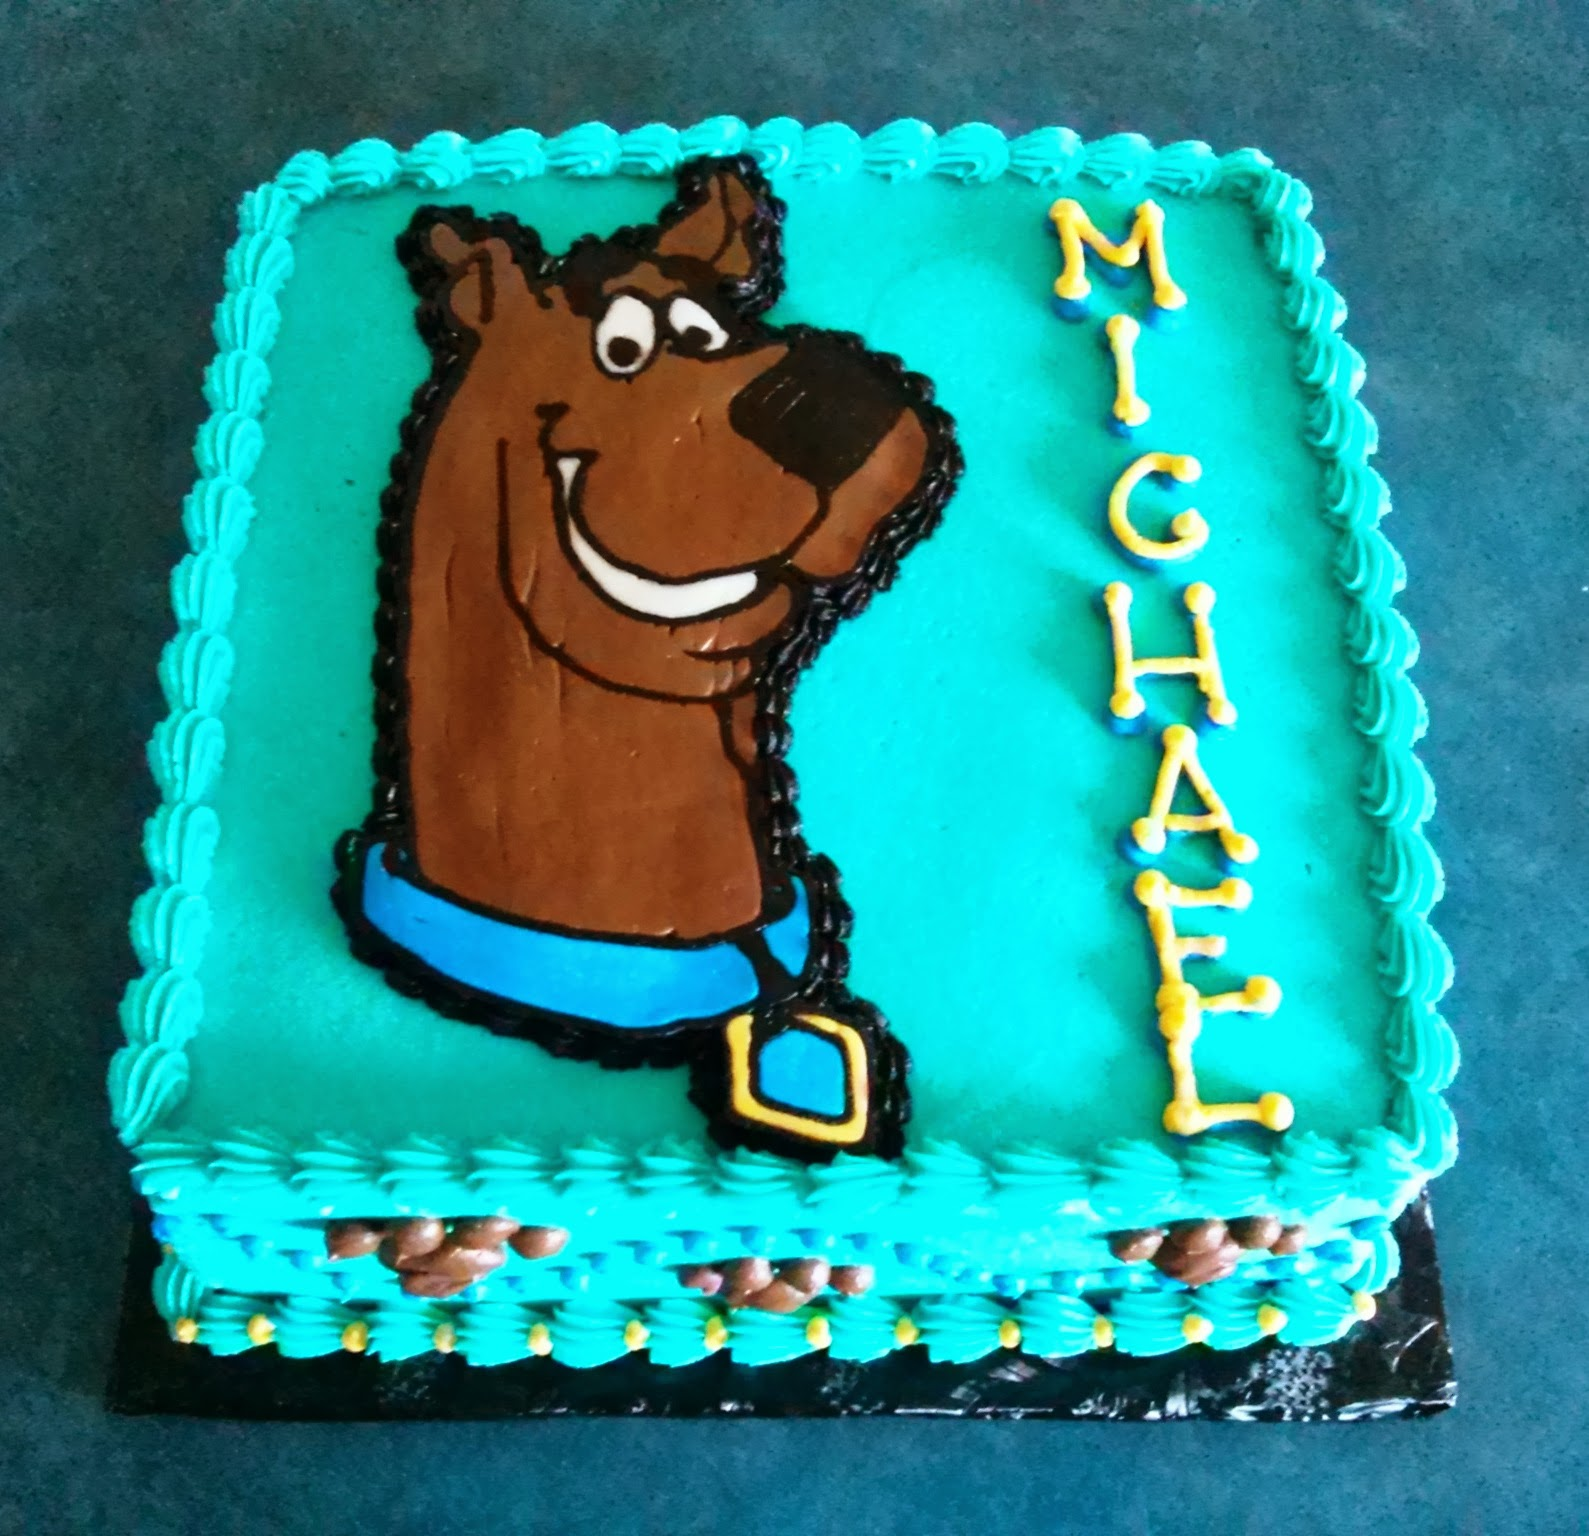 Pin Cakes Scooby Doo Cake Pan Walmart Cake On Pinterest